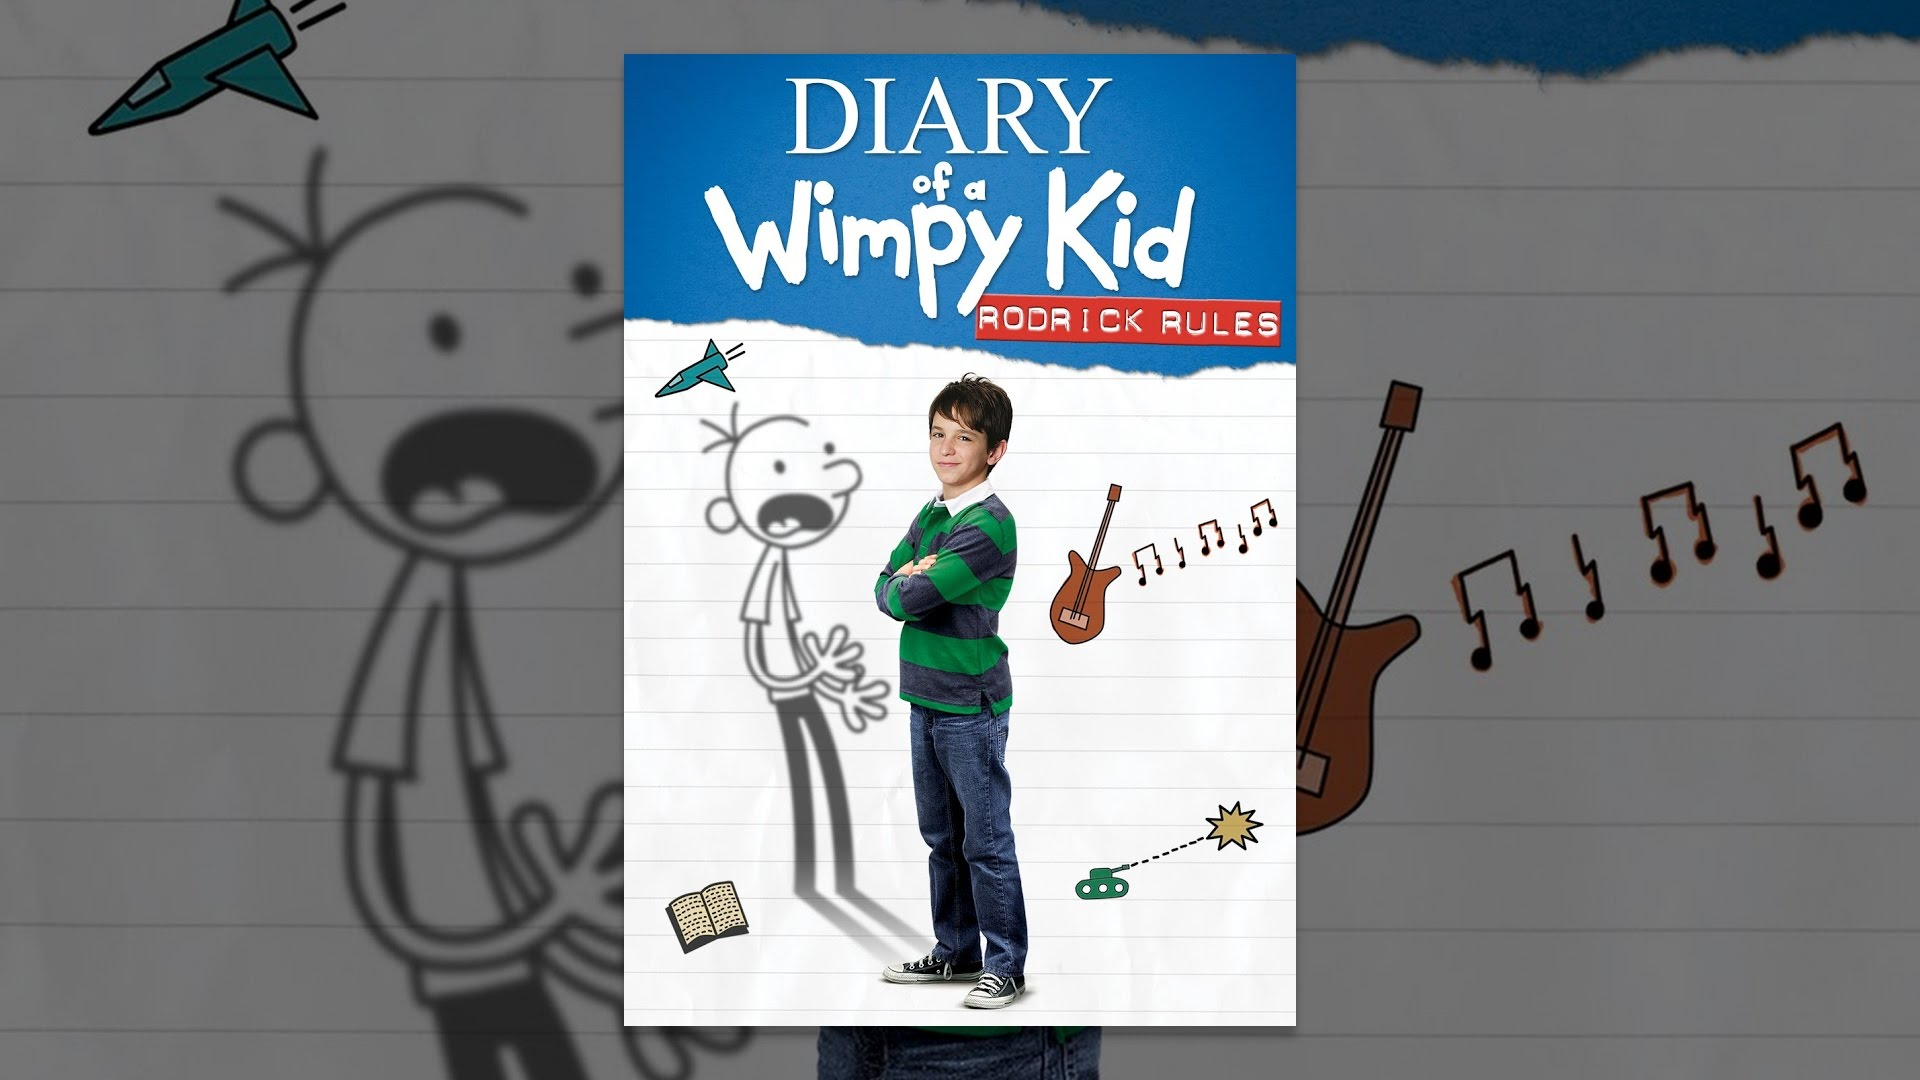 Diary of a wimpy kid movie online 2 top ten horror movies masks get movies music online for less at walmart locenca sid6000072283986diary of a wimpy kid the long haul movie reviews metacritic score greg solutioingenieria Gallery